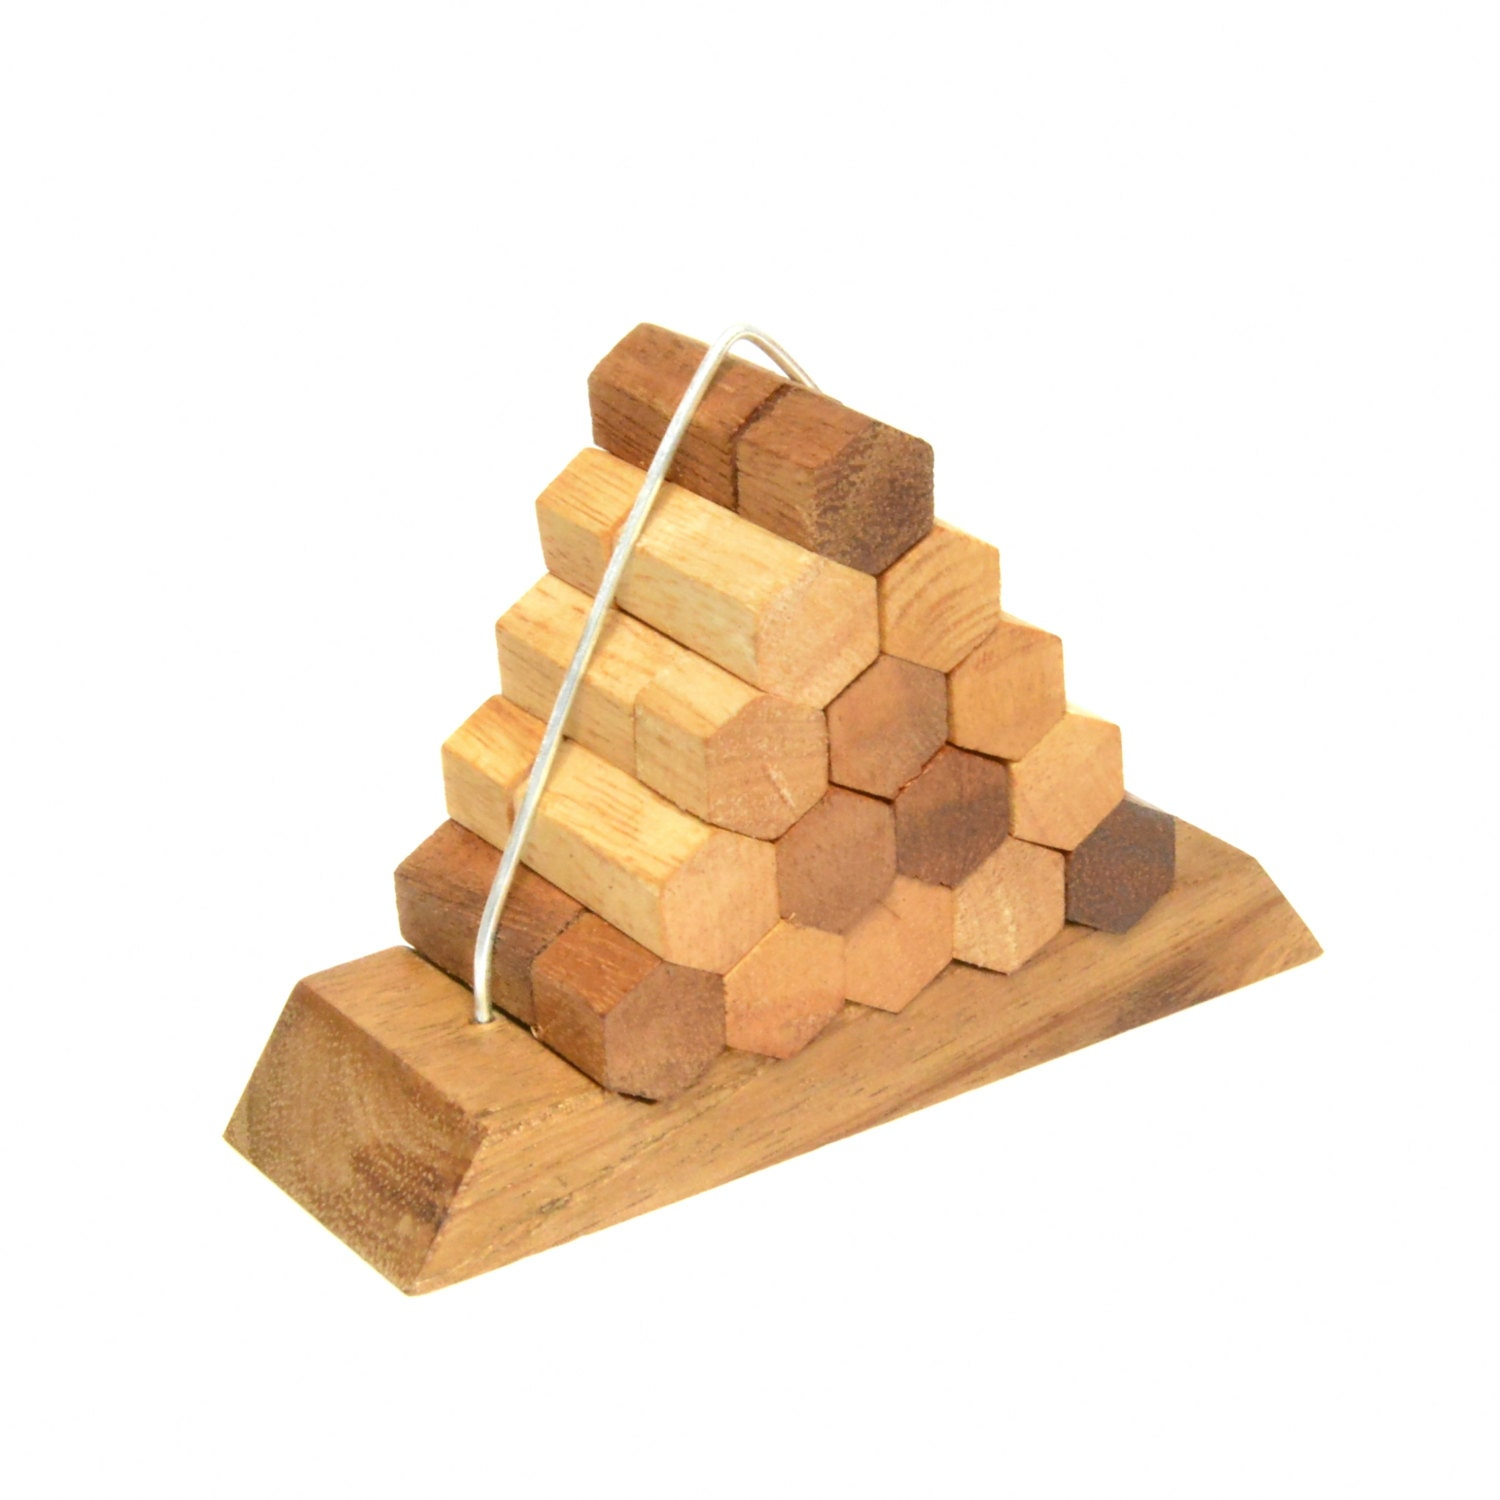 Beehive Pyramid Puzzle game Wooden game Woodworking